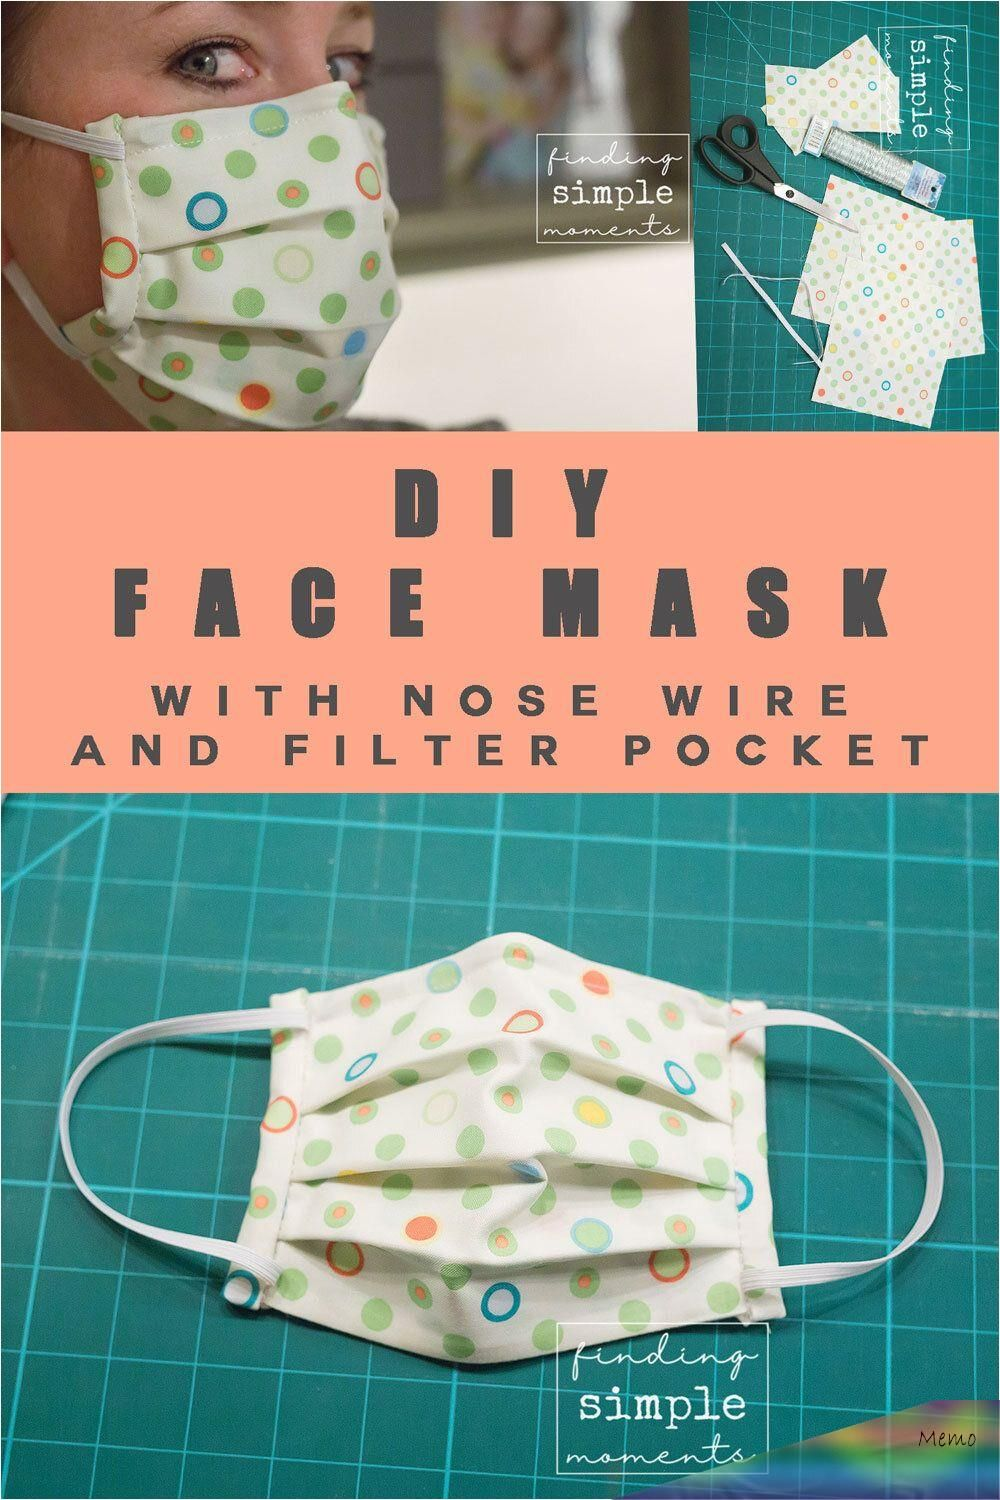 Easy DIY Face Mask with Nose Wire and Filter Pocket